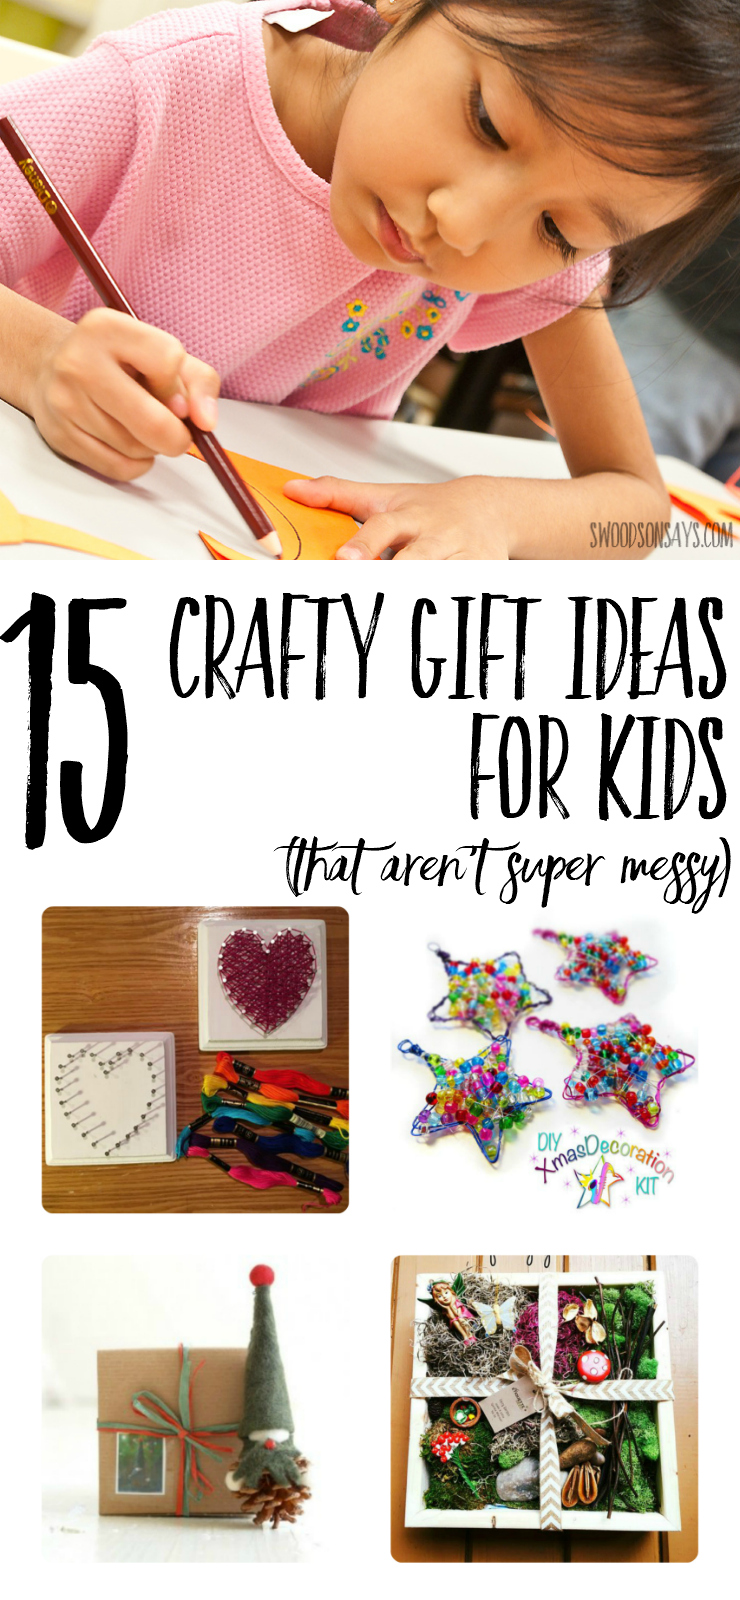 Check out this fun gift guide to see crafty presents for kids that DON'T make a huge mess. Crafty gift ideas for kids can be fun and easy, with suggestions for all ages. #giftguide #kidsgiftguide #nontoygiftideas #craftkitsforkids